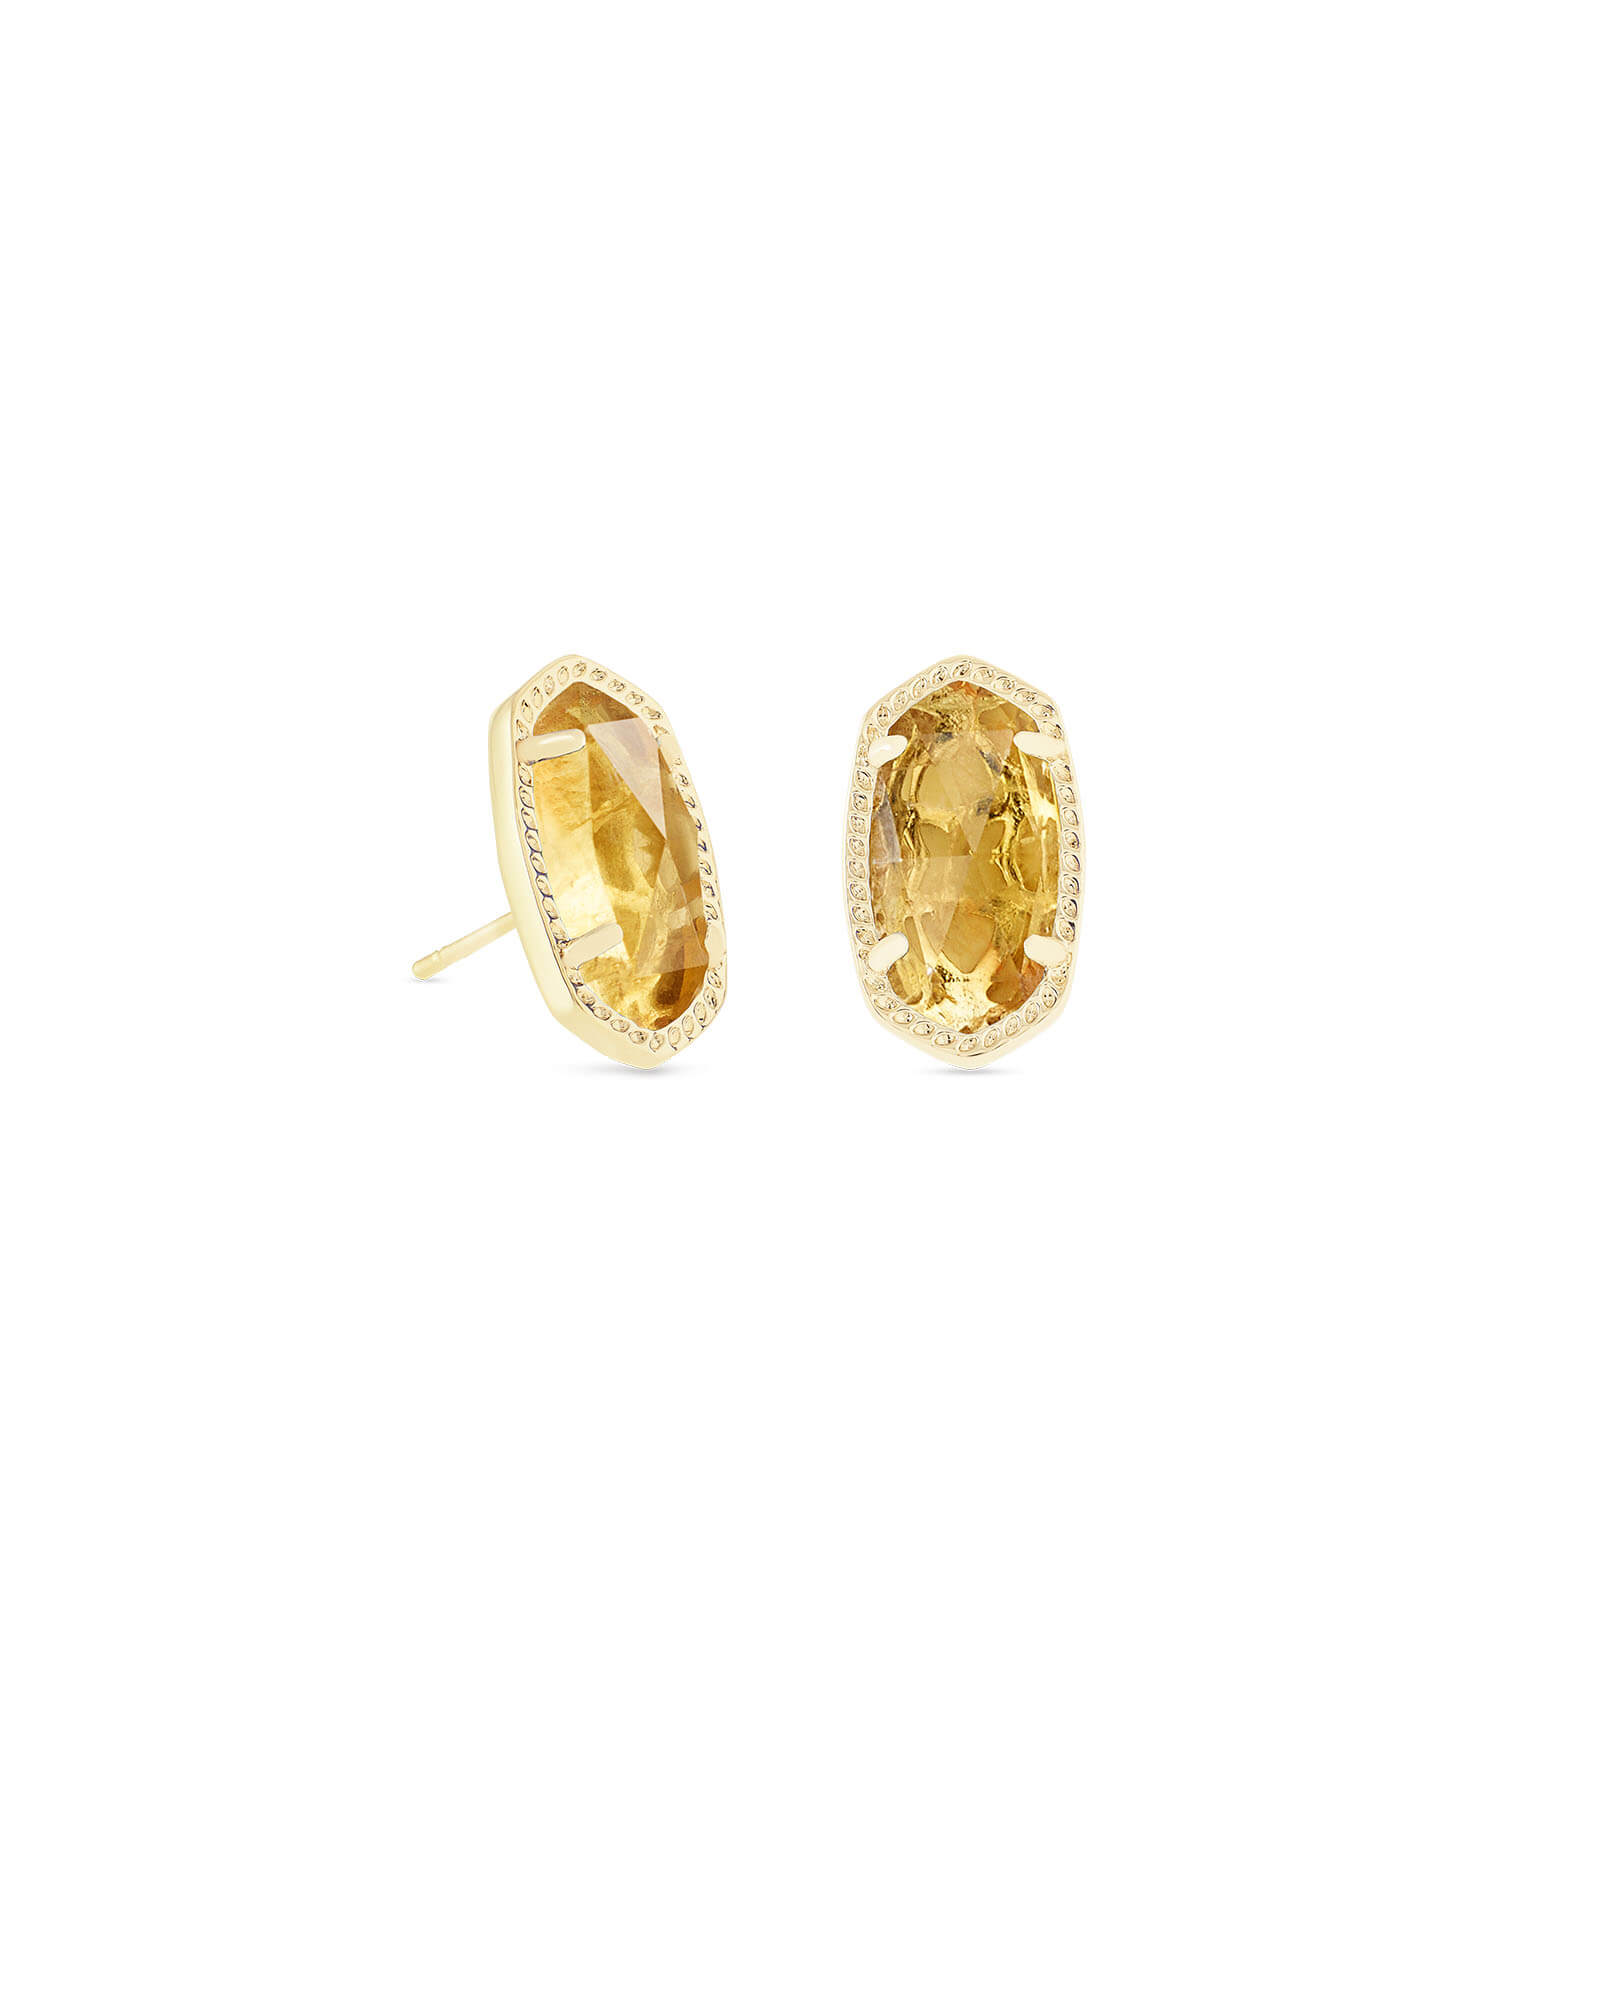 Ellie Gold Stud Earrings in Citrine